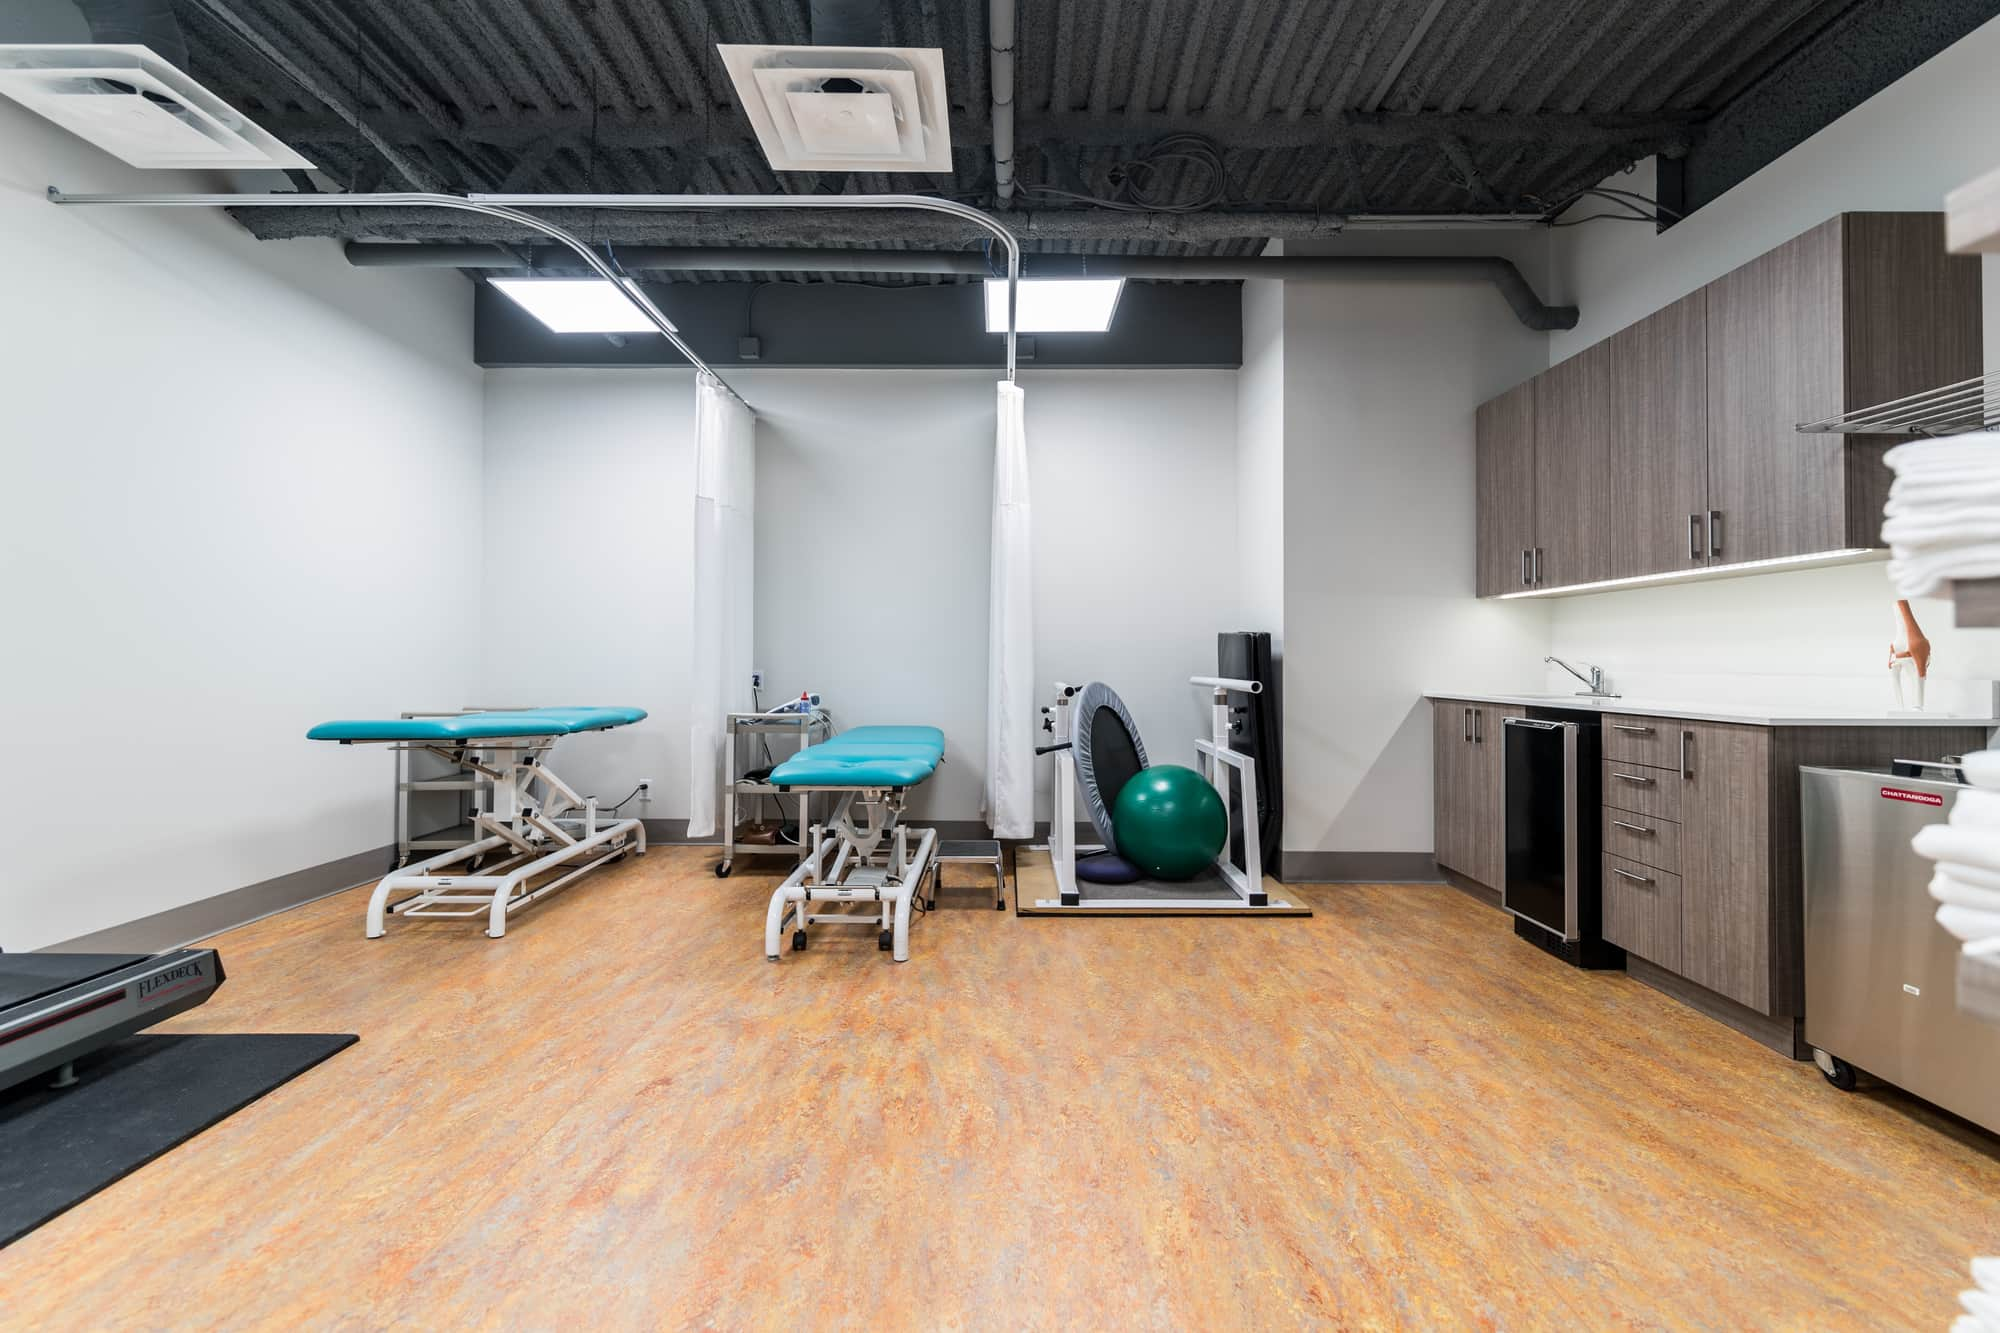 Rehabilitation room after renovation in a physiotherapy clinic